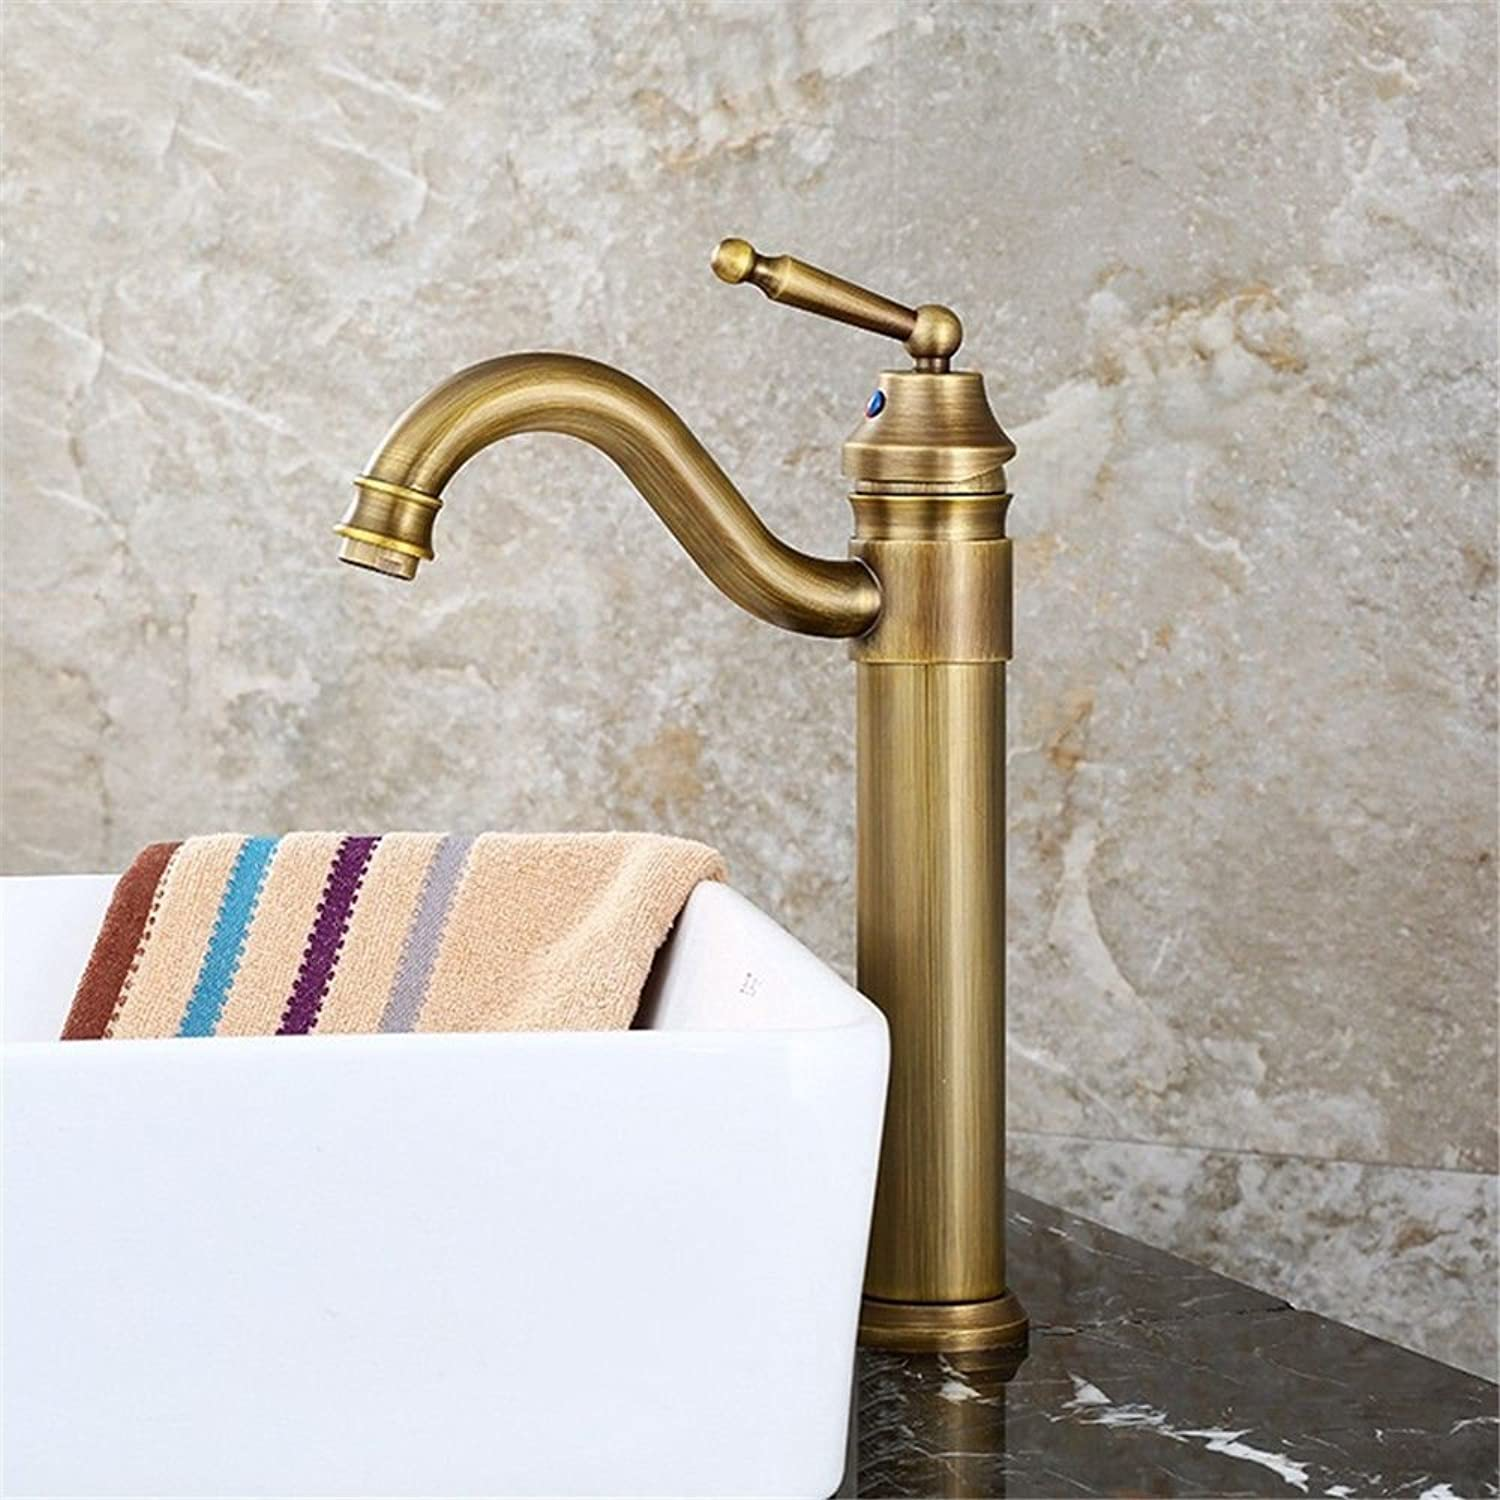 AQMMi Basin Taps Bathroom Sink Faucet Brass Antique Hot and Cold Water Single Lever redatable Bathroom Sink Faucet Basin Mixer Tap